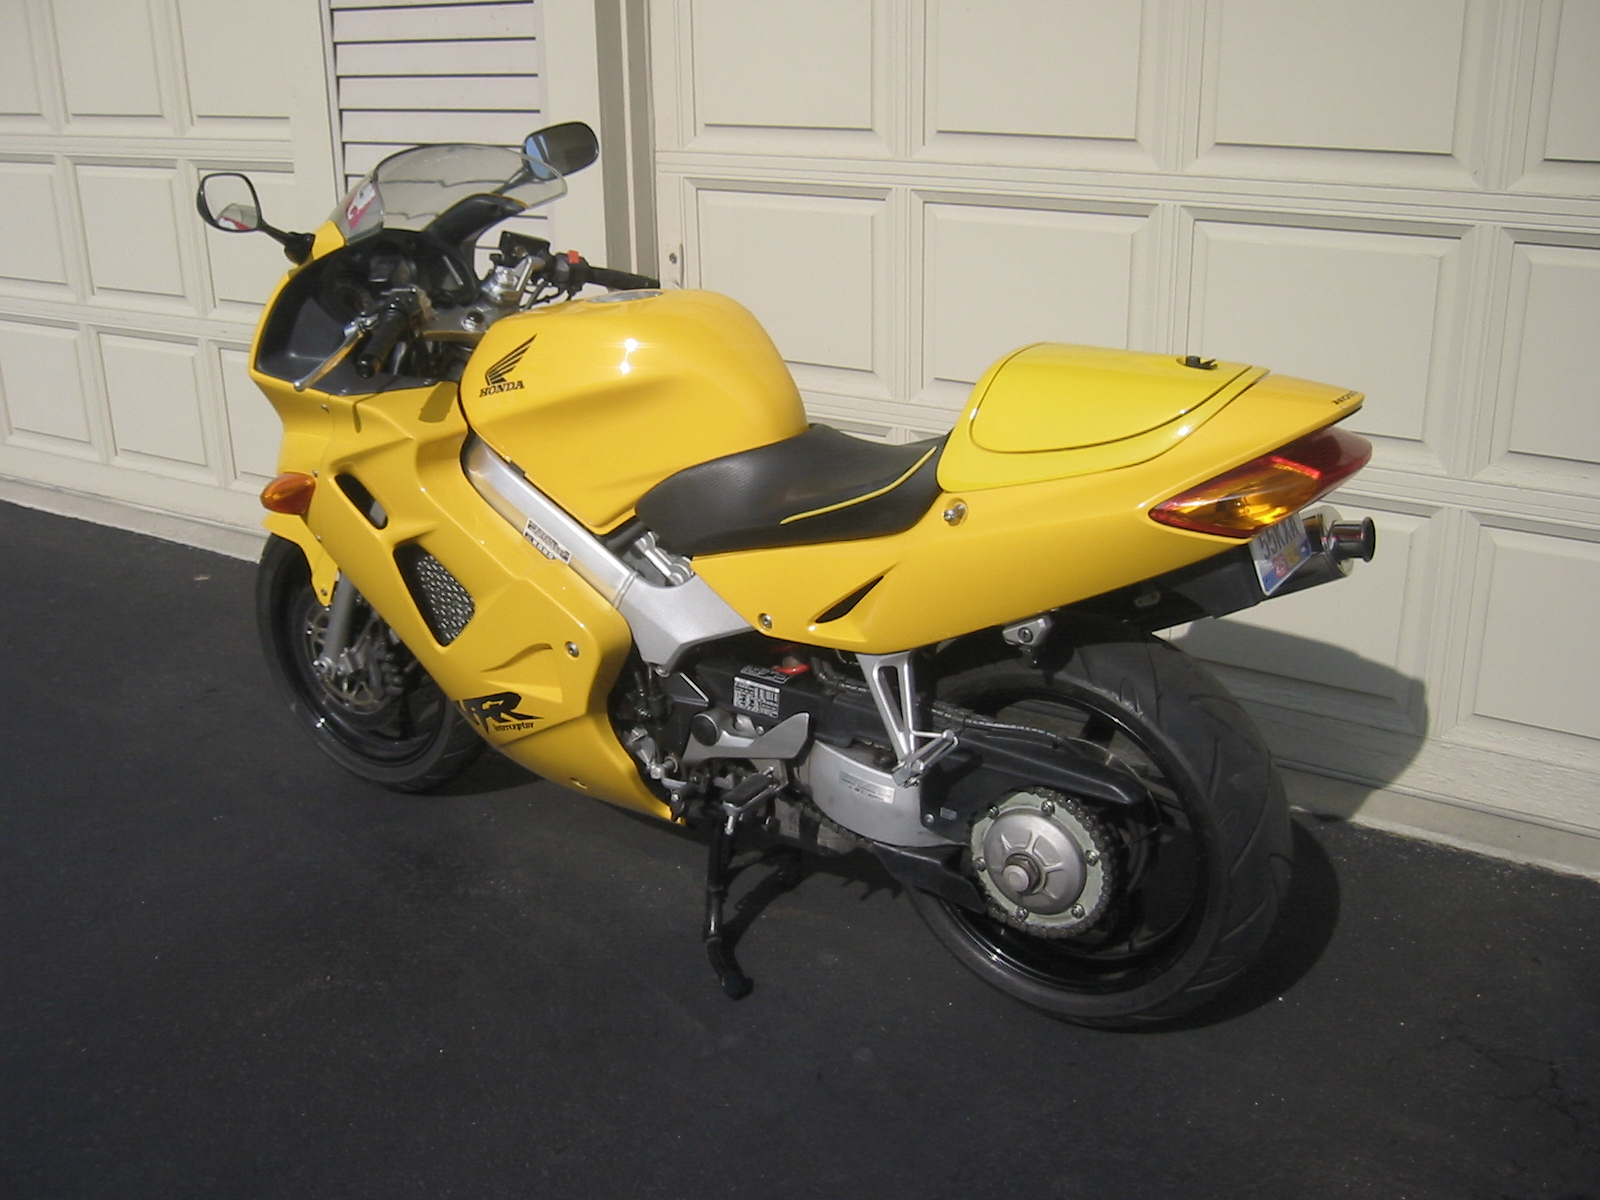 2000 honda vfr 800 f pics specs and information. Black Bedroom Furniture Sets. Home Design Ideas